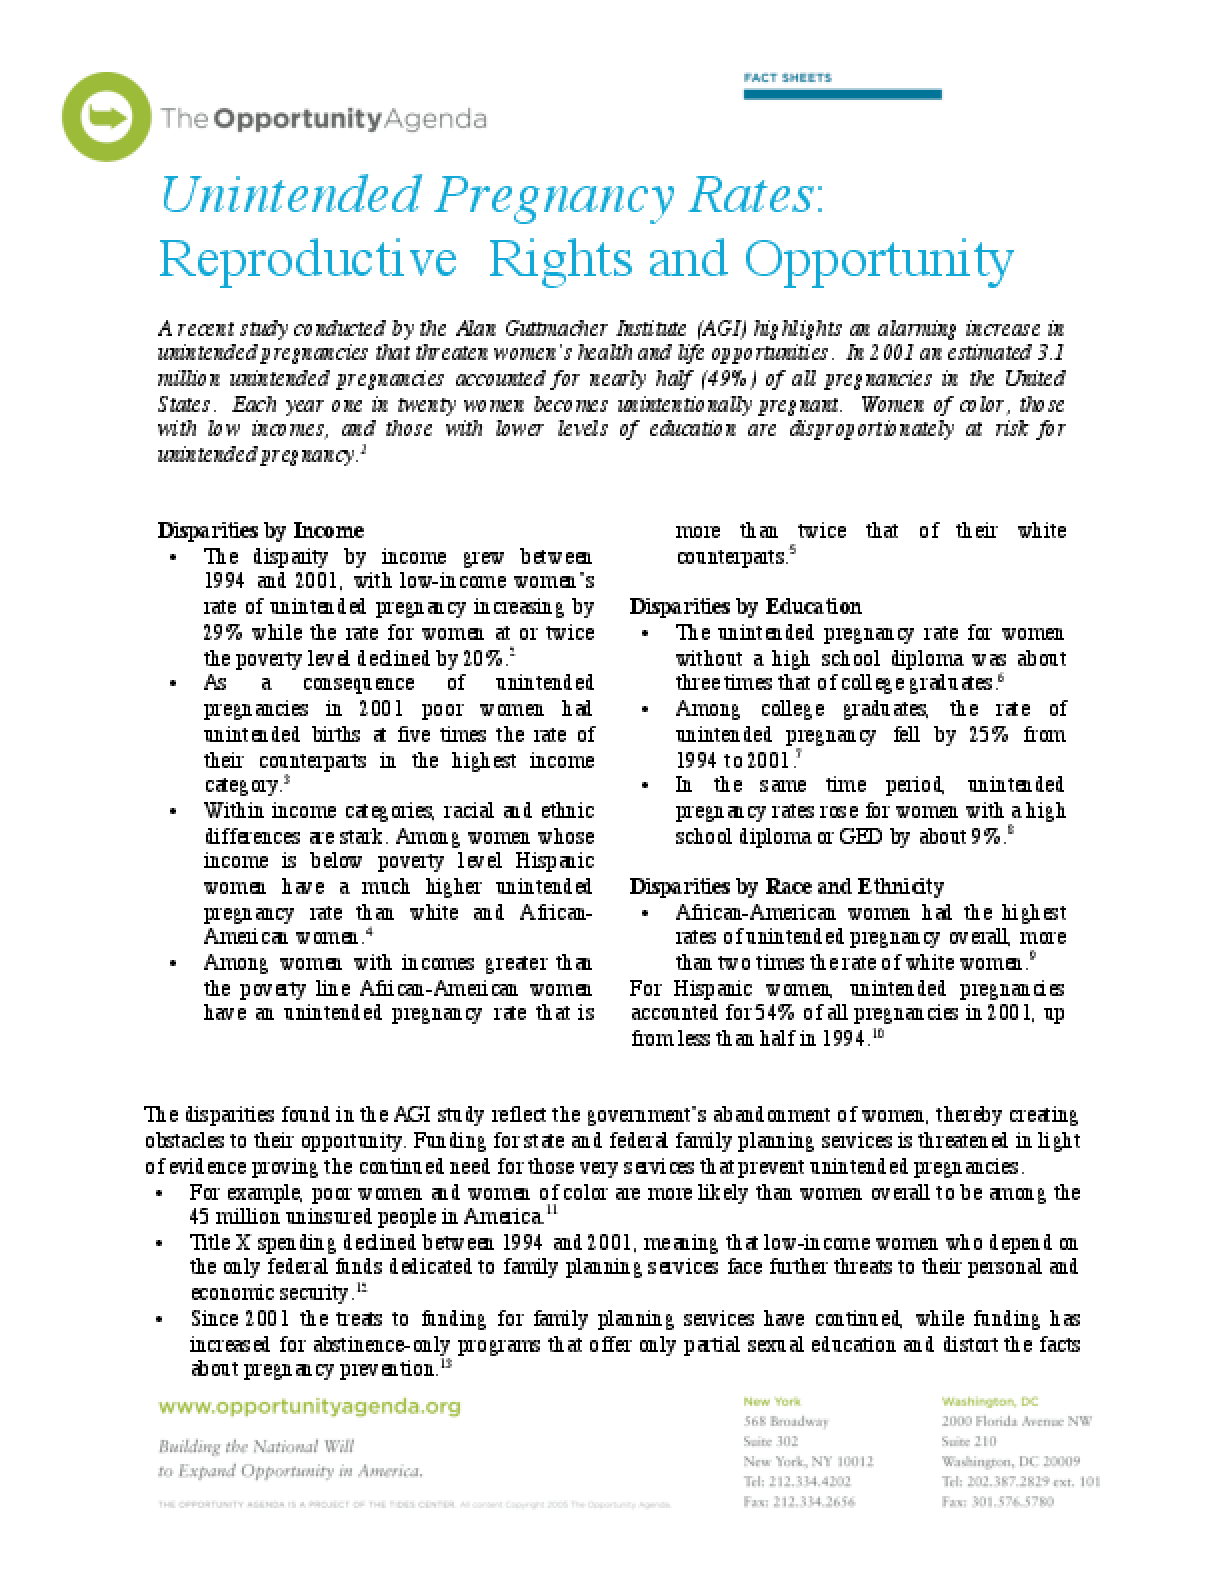 Unintended Pregnancies and Opportunity